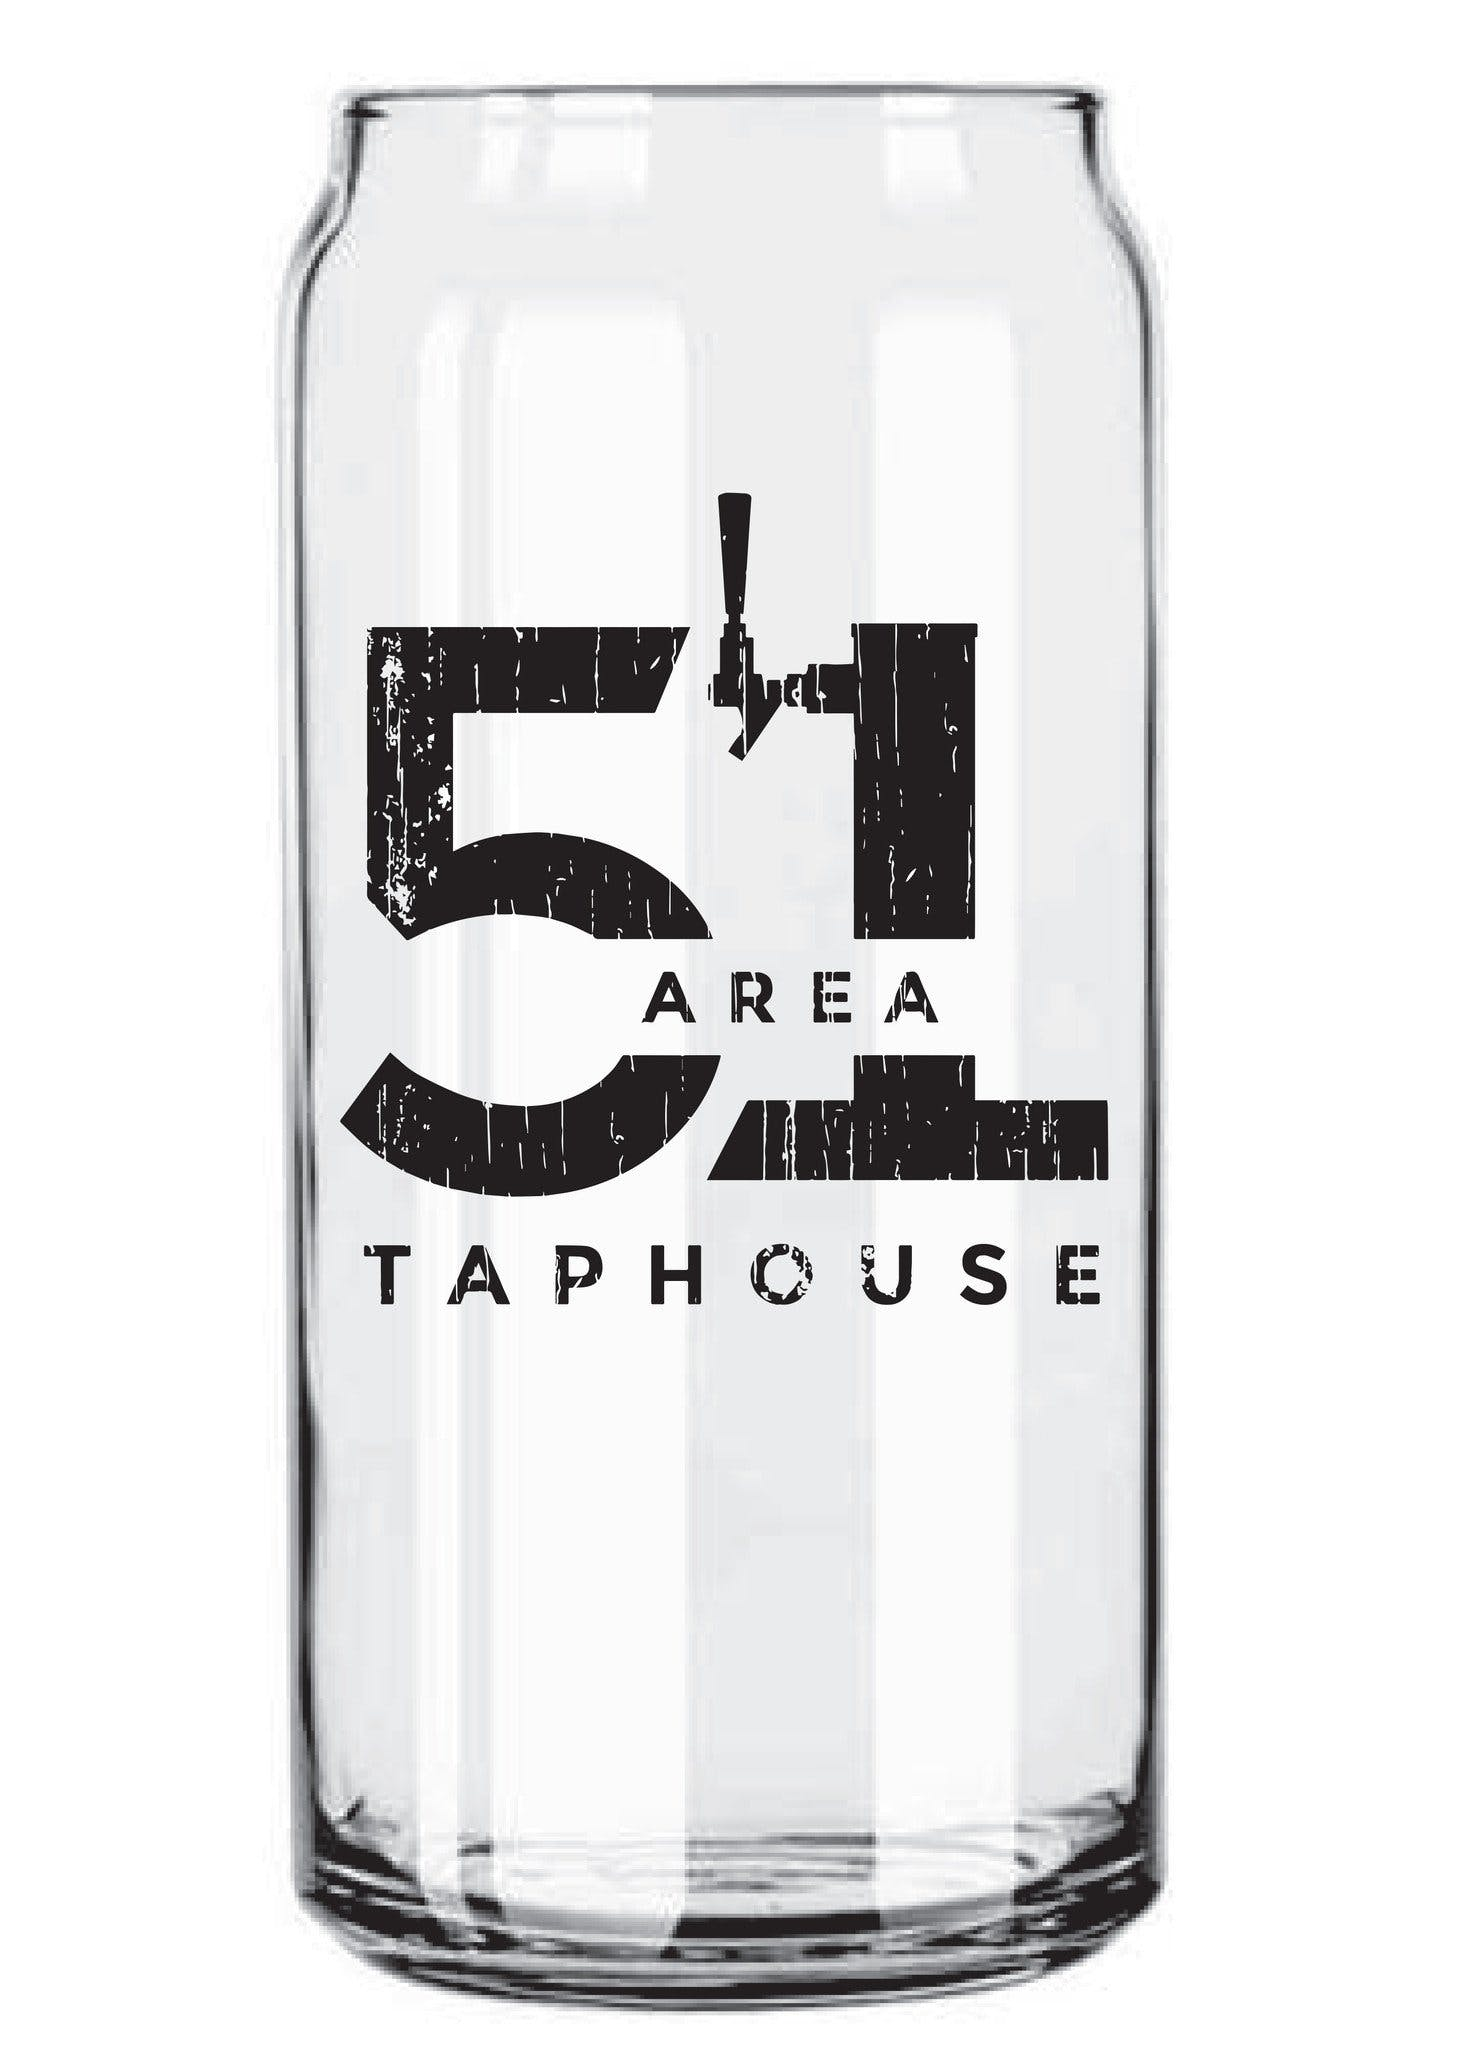 20 oz. Tall Boy Beer Can #657 - sold by Clearwater Gear